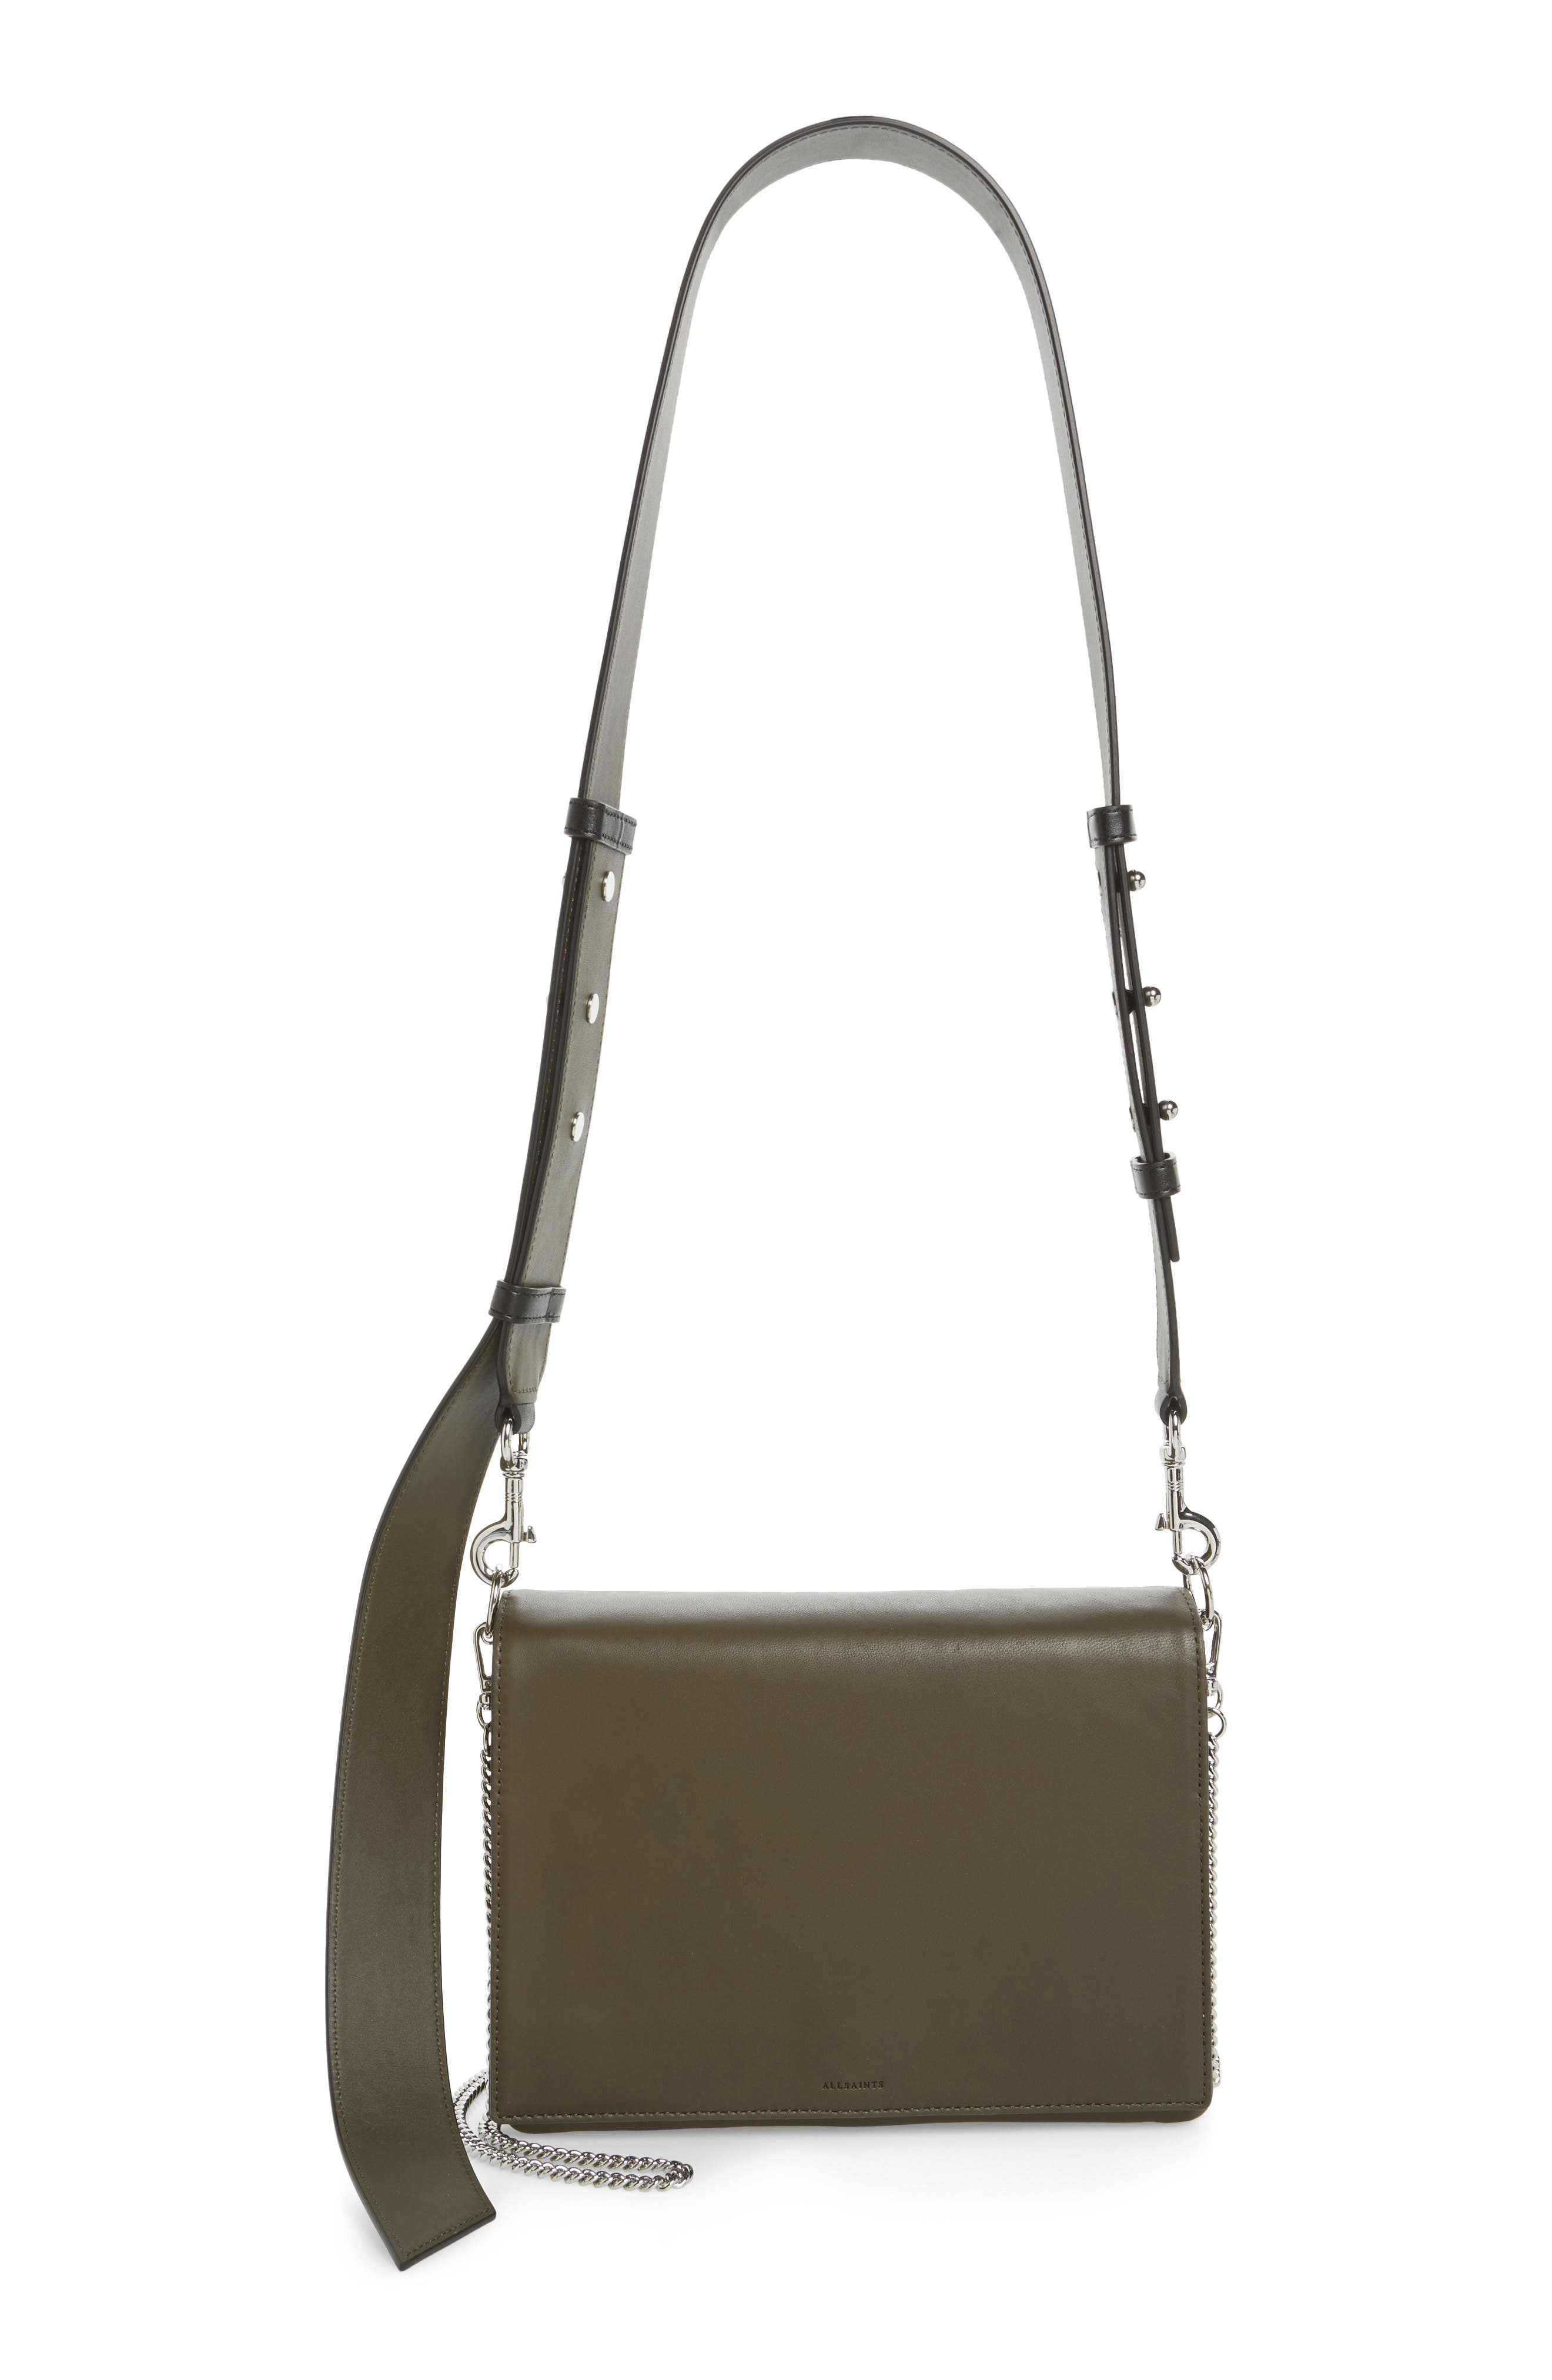 Zep Lambskin Leather Box Bag,                         Main,                         color,